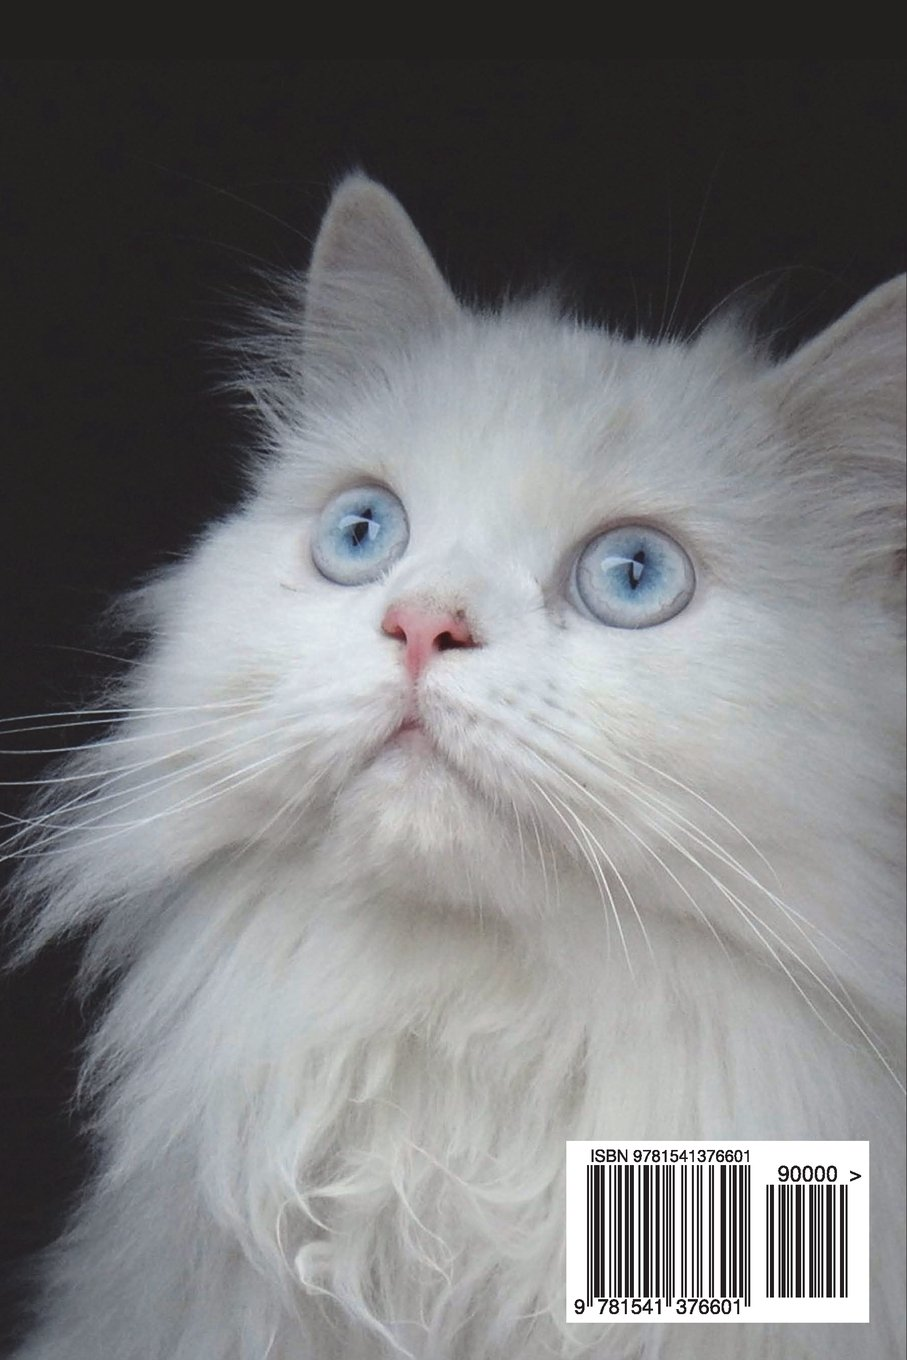 White Persian Cat Seeks Villain for Lap and Petting Journal: 150 page lined notebook/diary: Cool Image: 9781541376601: Amazon.com: Books